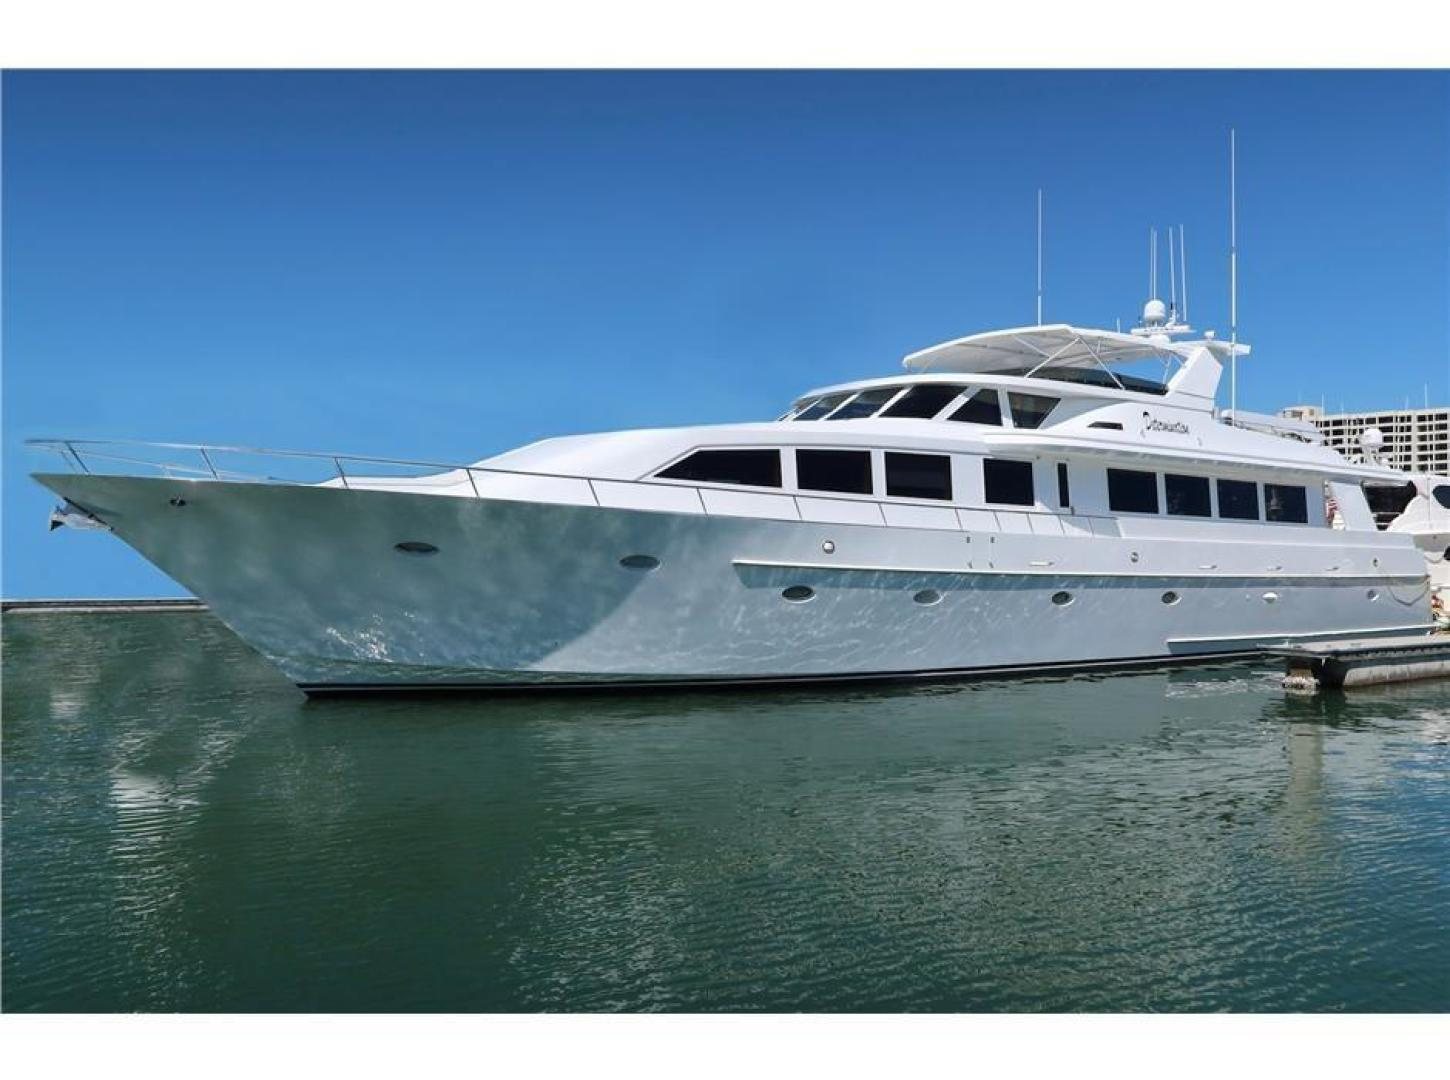 1991 Crescent 102ft DETERMINATION Yacht for Sale